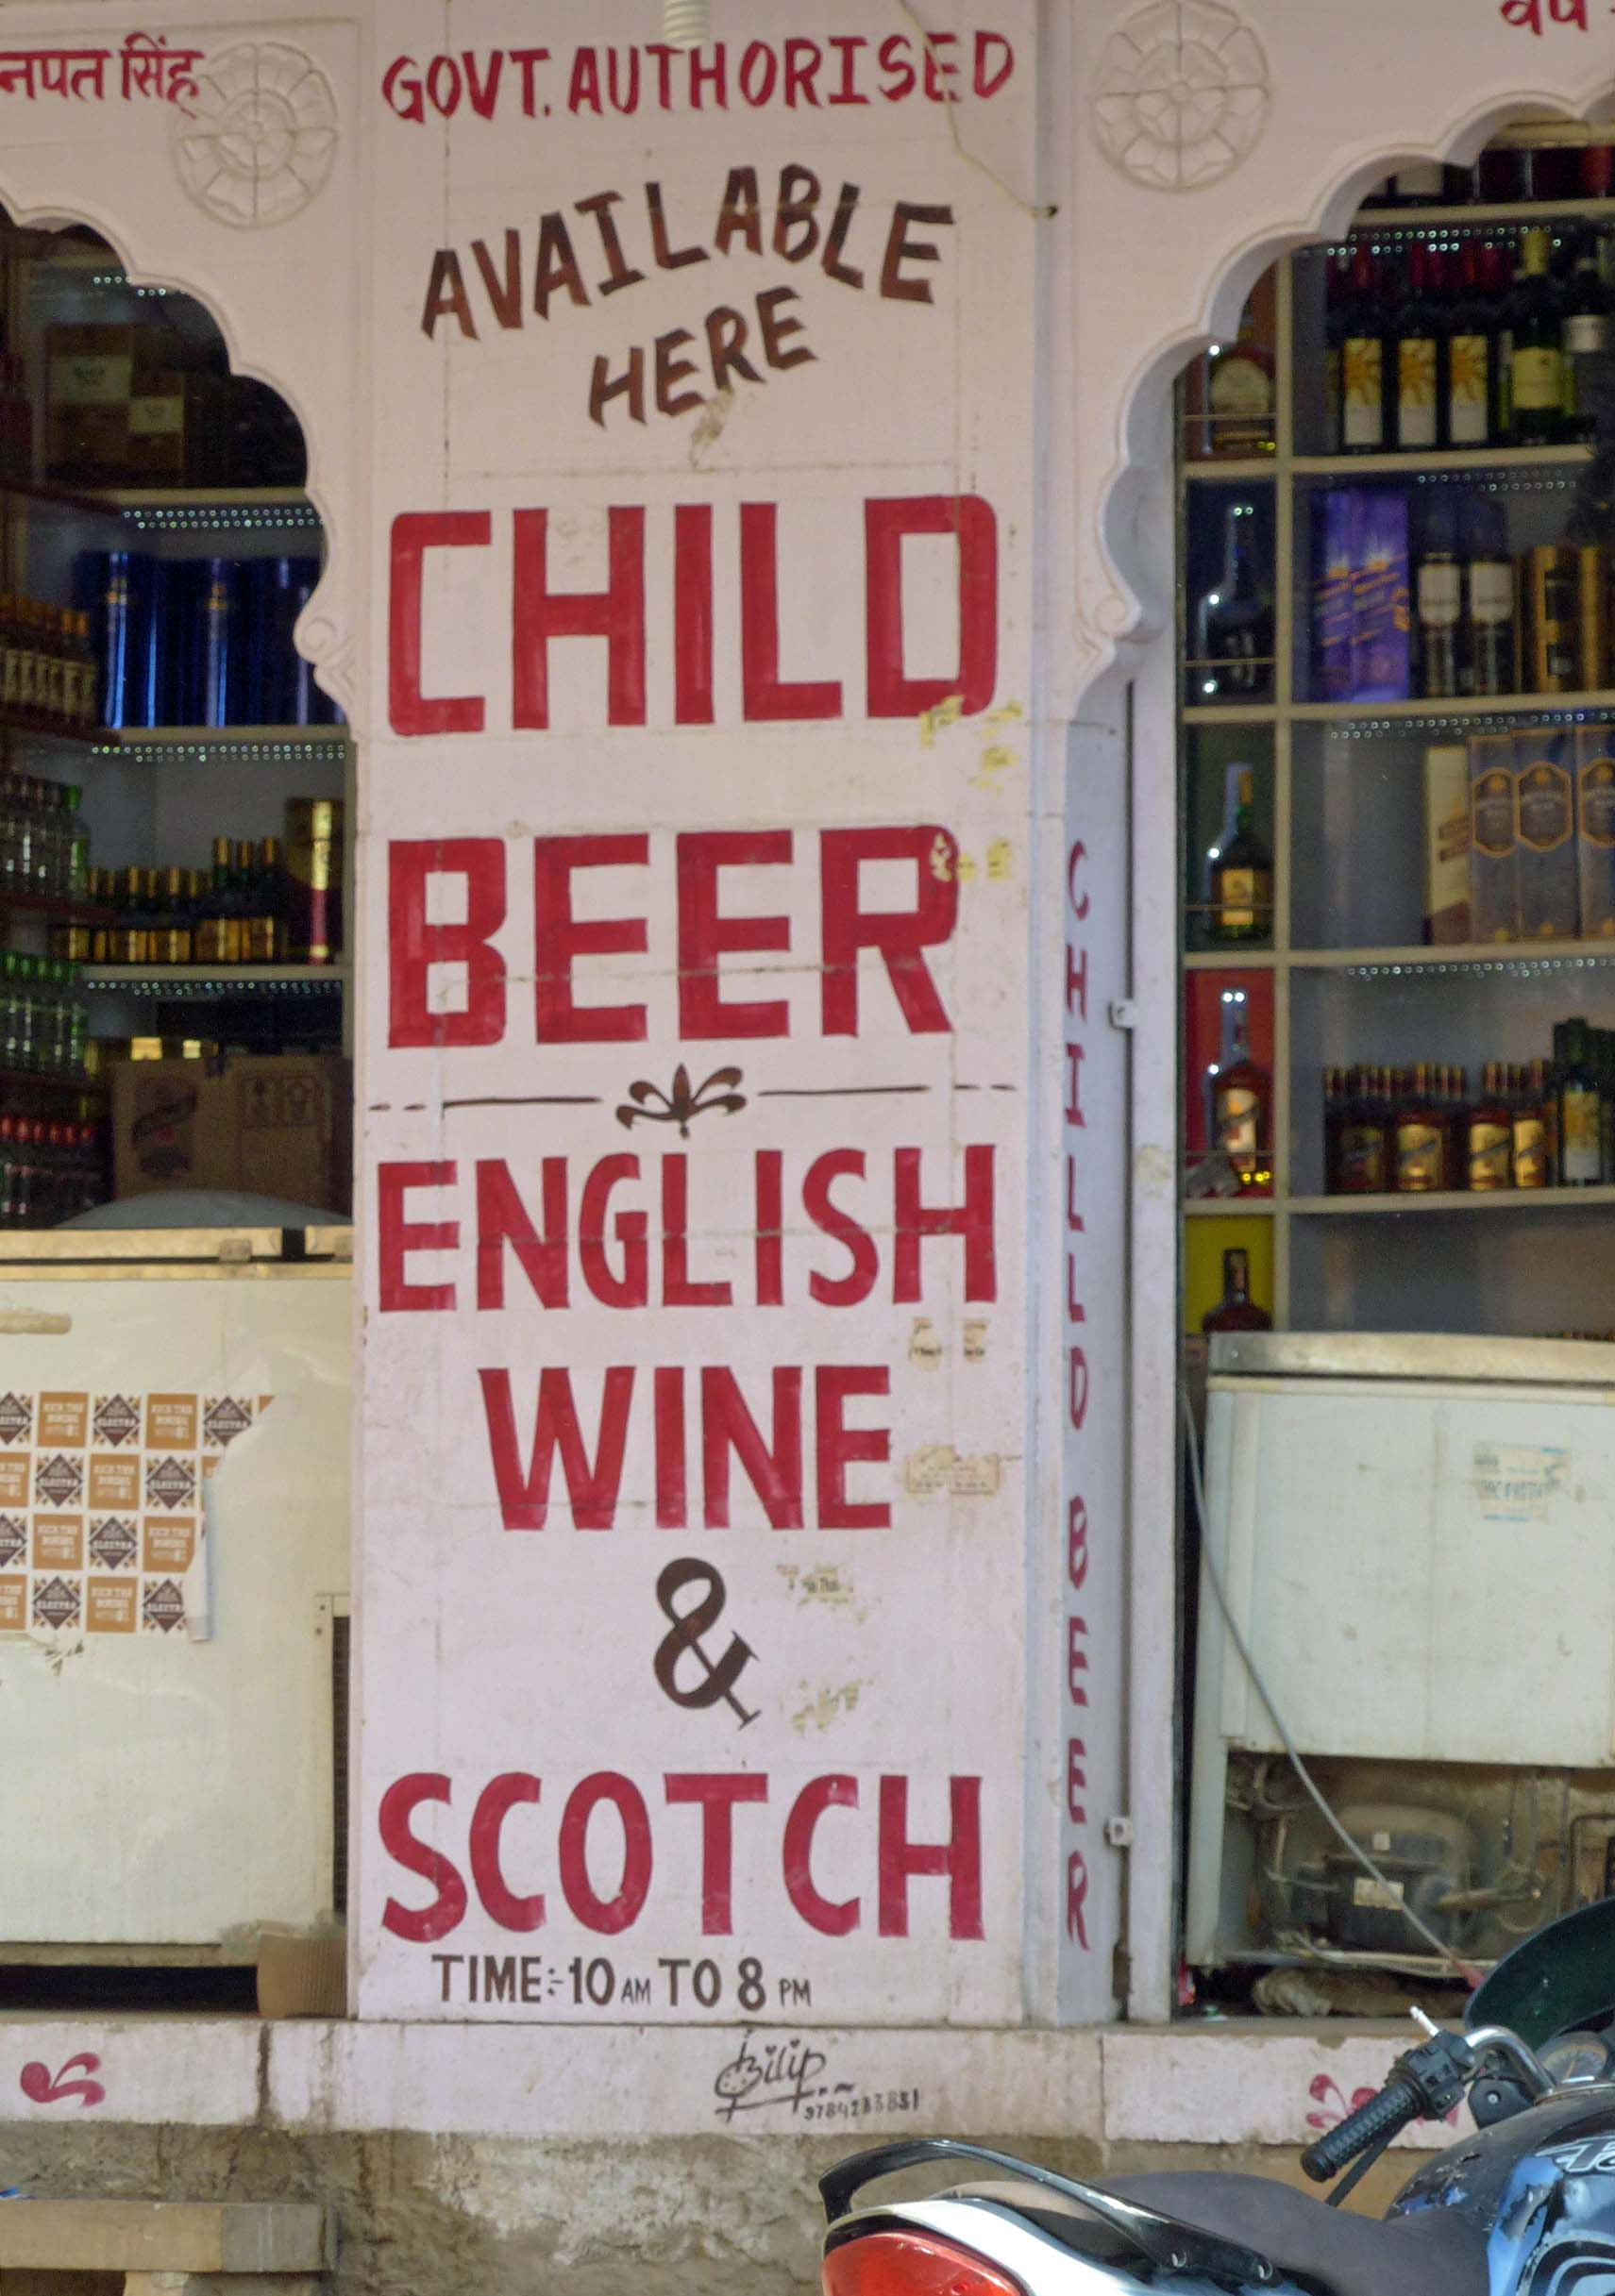 Sign advertising alcoholic drinks